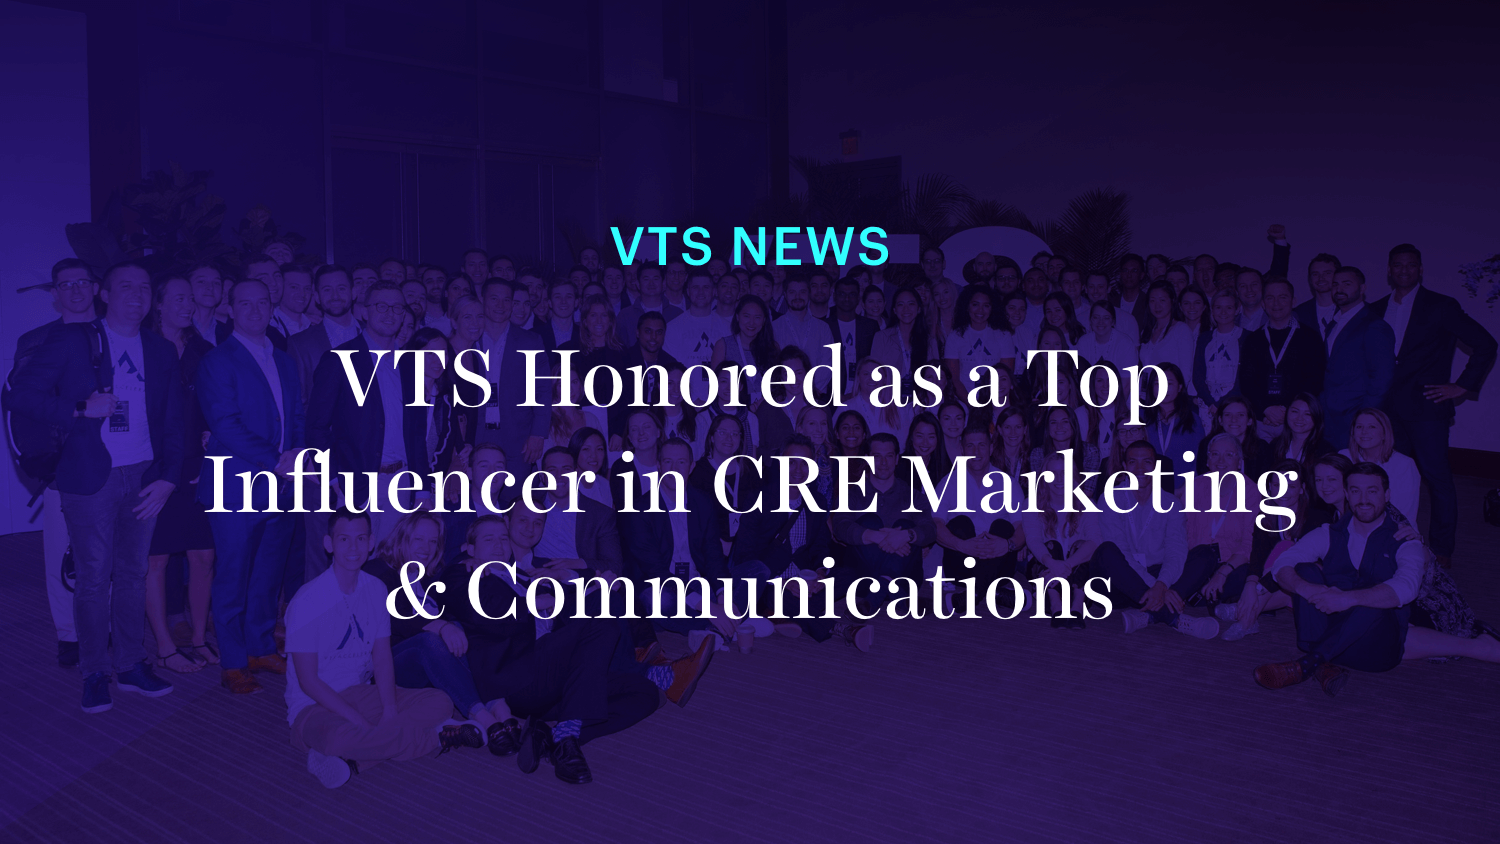 VTS Honored as a Top Influencer in CRE Marketing & Communications